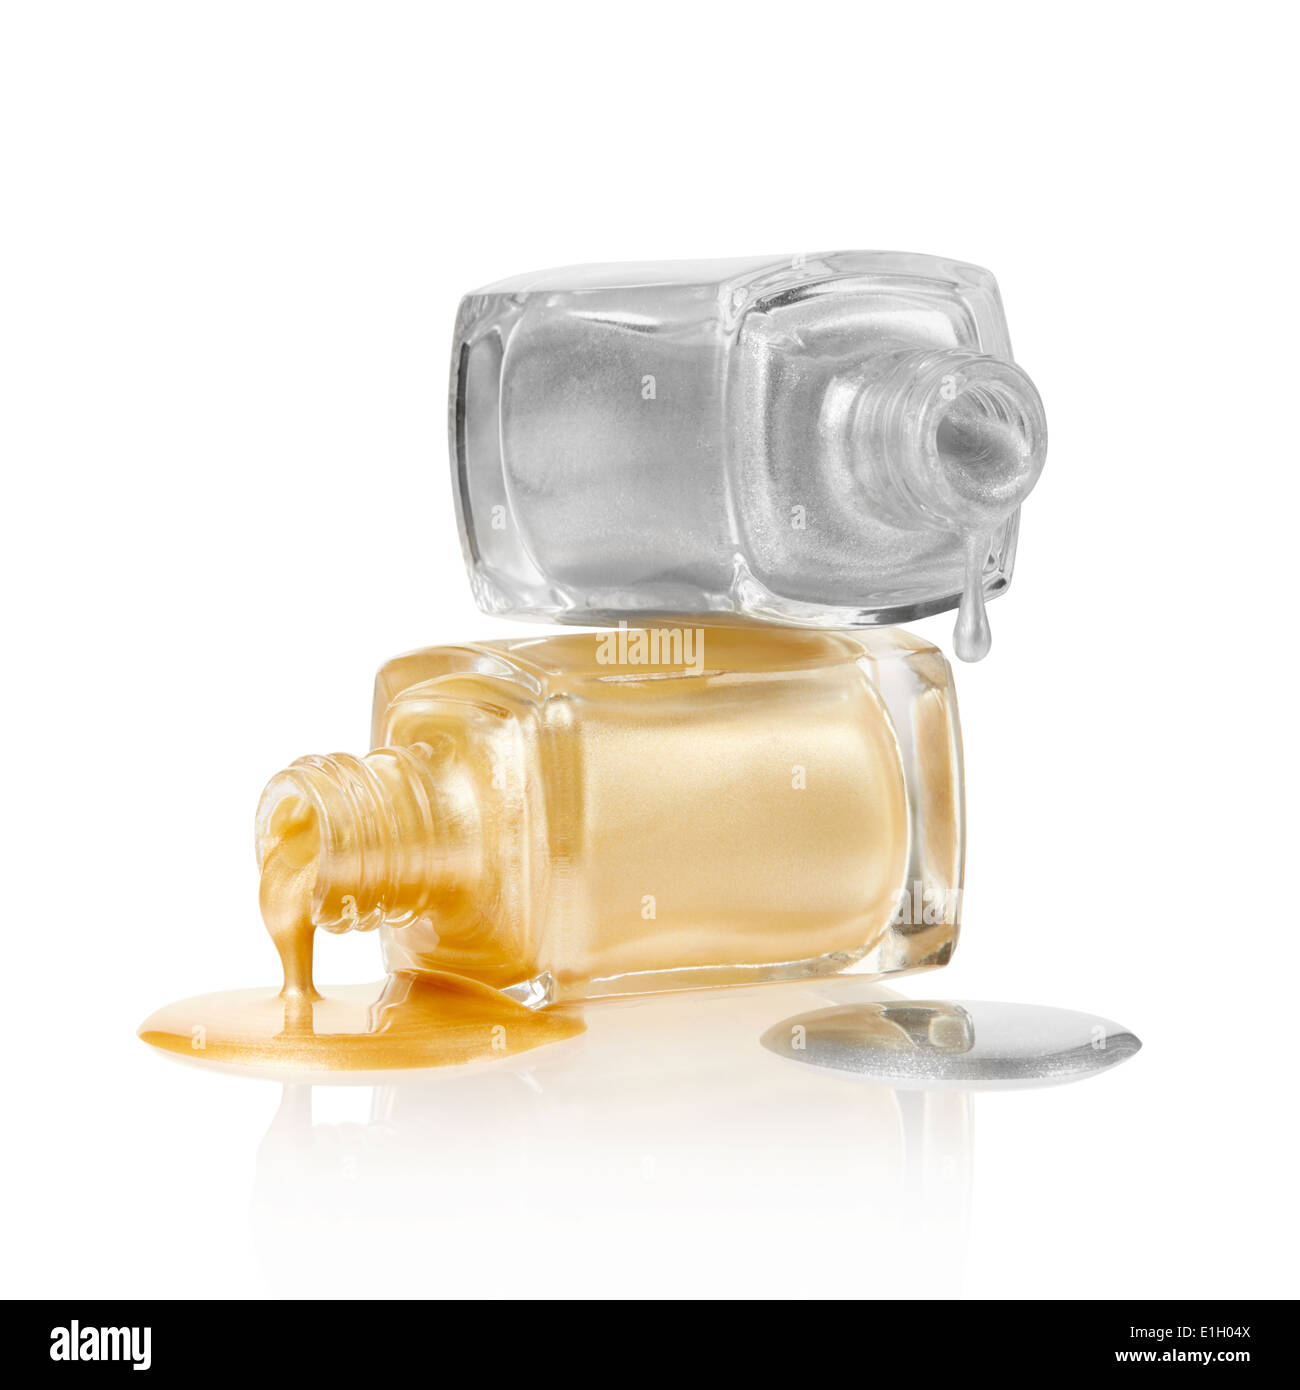 Gold and silver nail polish spilled Stock Photo: 69829450 - Alamy